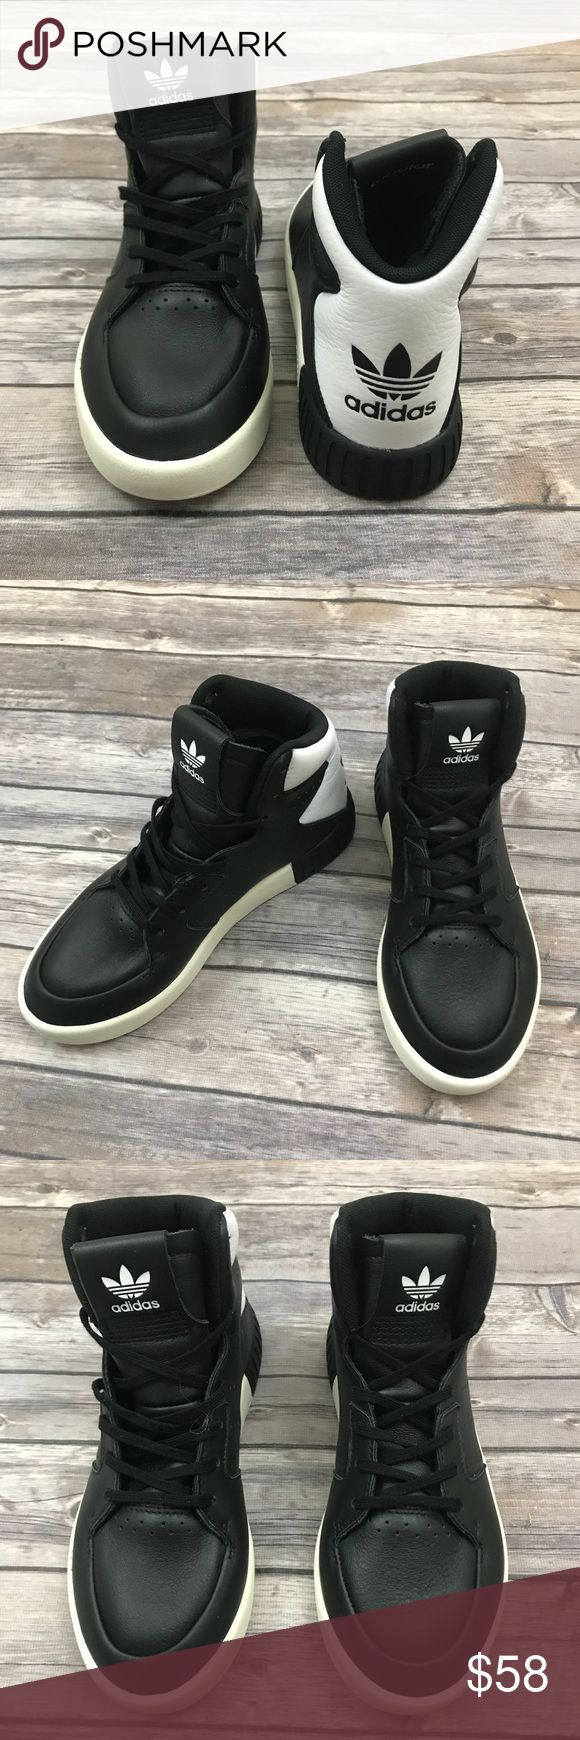 New Adidas Tubular High Top Tennis Shoes Adidas Originals Tubular High Top Sneakers in Black and White •New without box •Retails for $120  Check out my other listings- Nike, adidas, Michael Kors, Hunter Boots, Kate Spade, Miss Me, Rock Revival, Coach, Wildfox, Victoria's Secret, PINK, True Religion, Ugg Australia, Free People and more! adidas Shoes Athletic Shoes